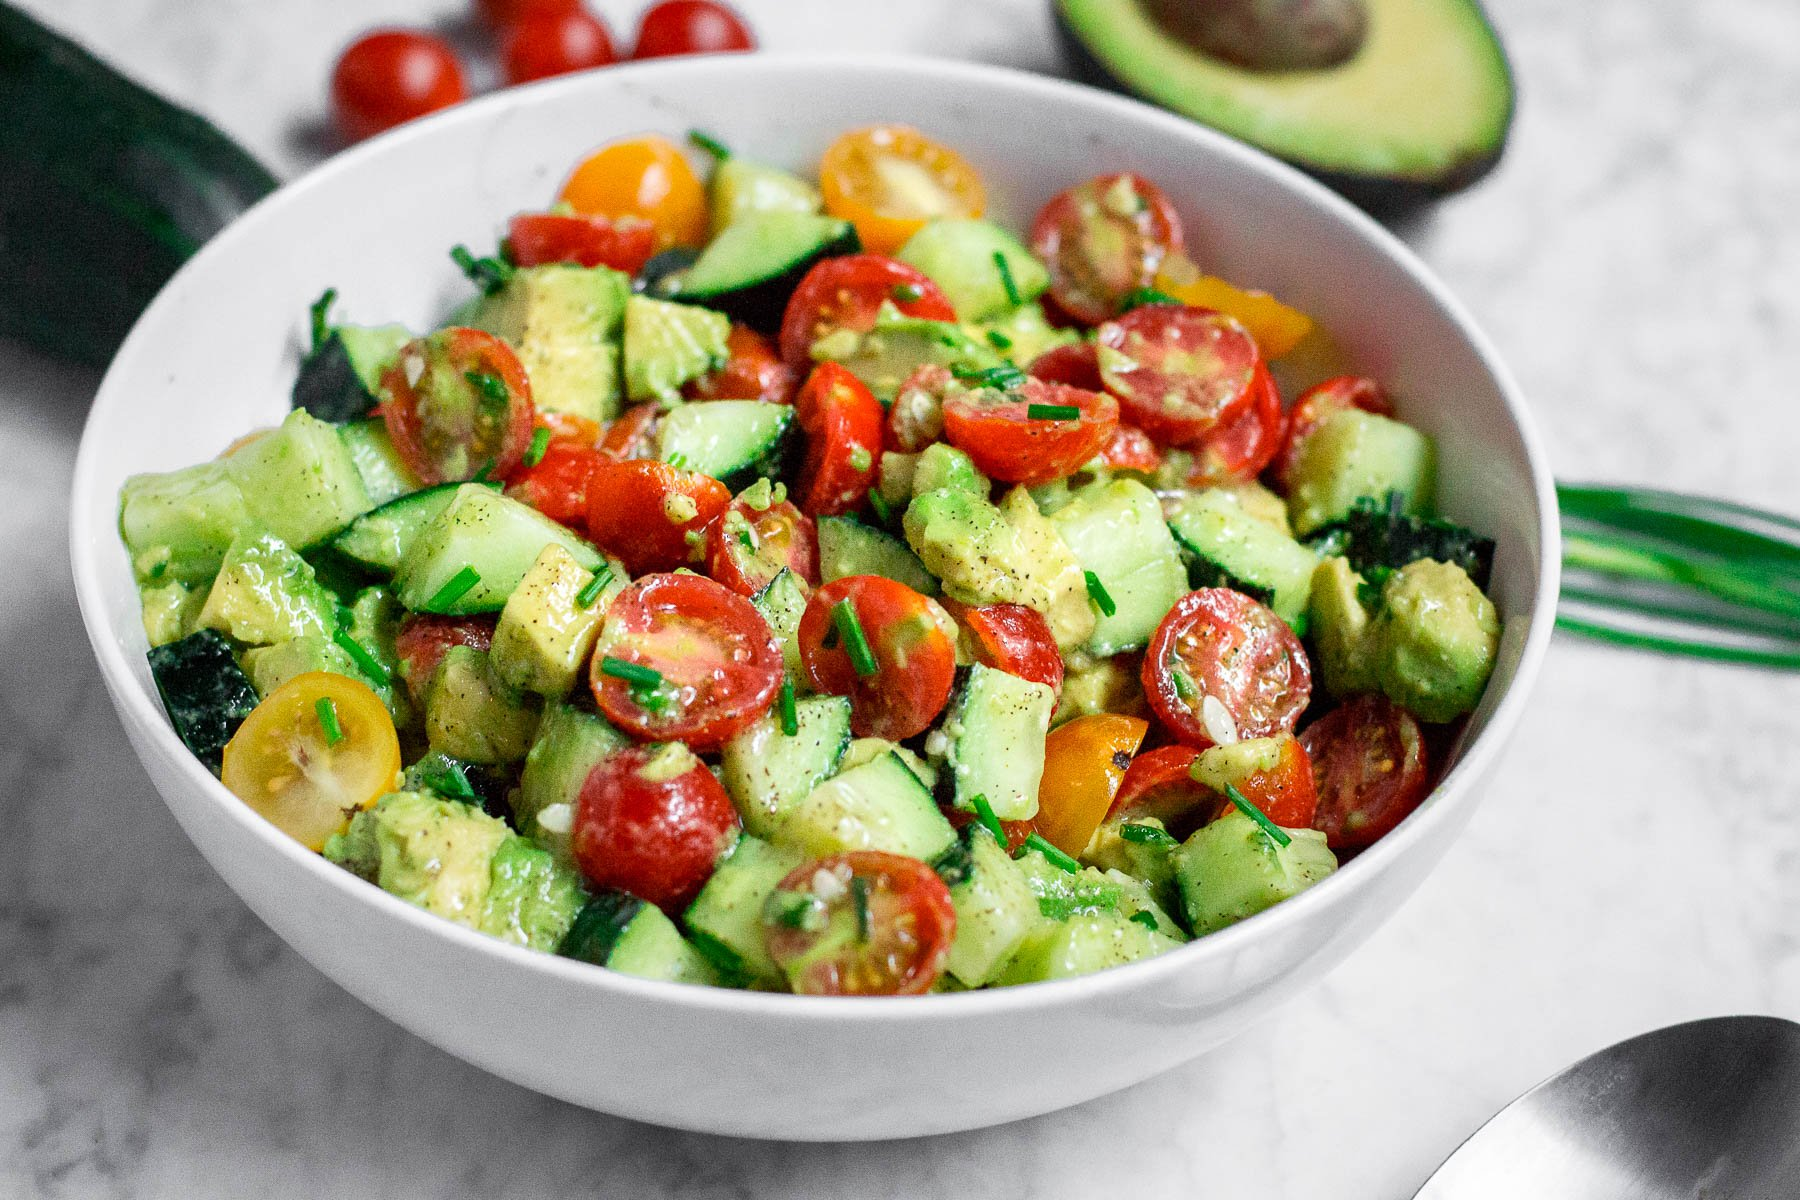 A white bowl filled with diced cucumbers, tomatoes, and avocado in a lemon dressing with chopped chives on top.